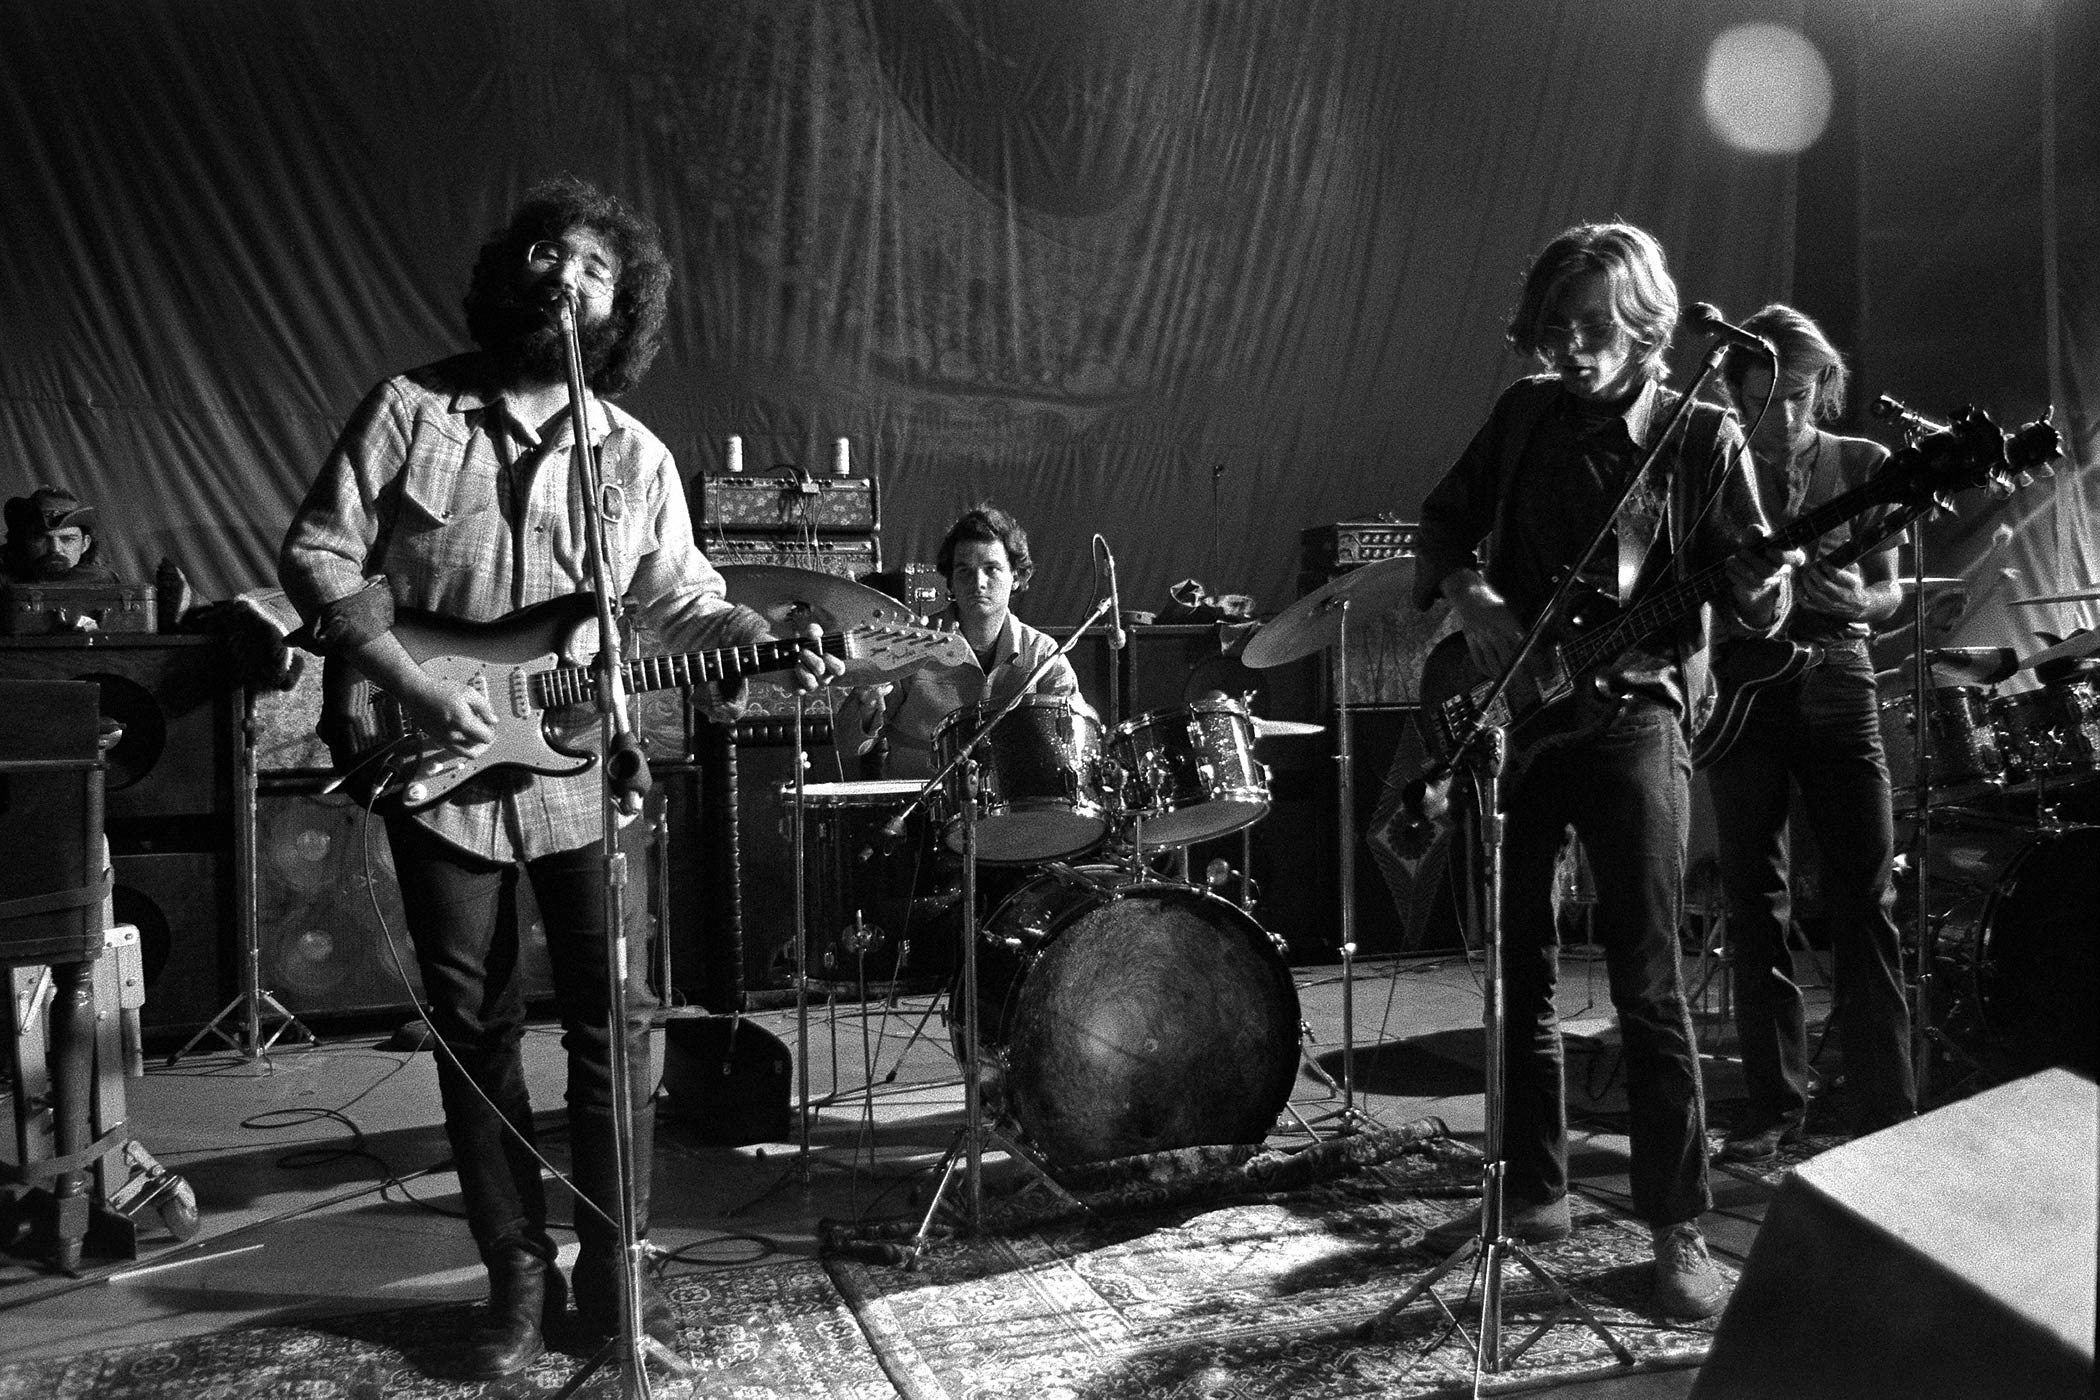 From left: Ron 'Pigpen' McKernan, Jerry Garcia, Bill Kreutzmann, Phil Lesh and Bob Weir of the Grateful Dead perform onstage at The Family Dog in 1970 in San Francisco, Calif.